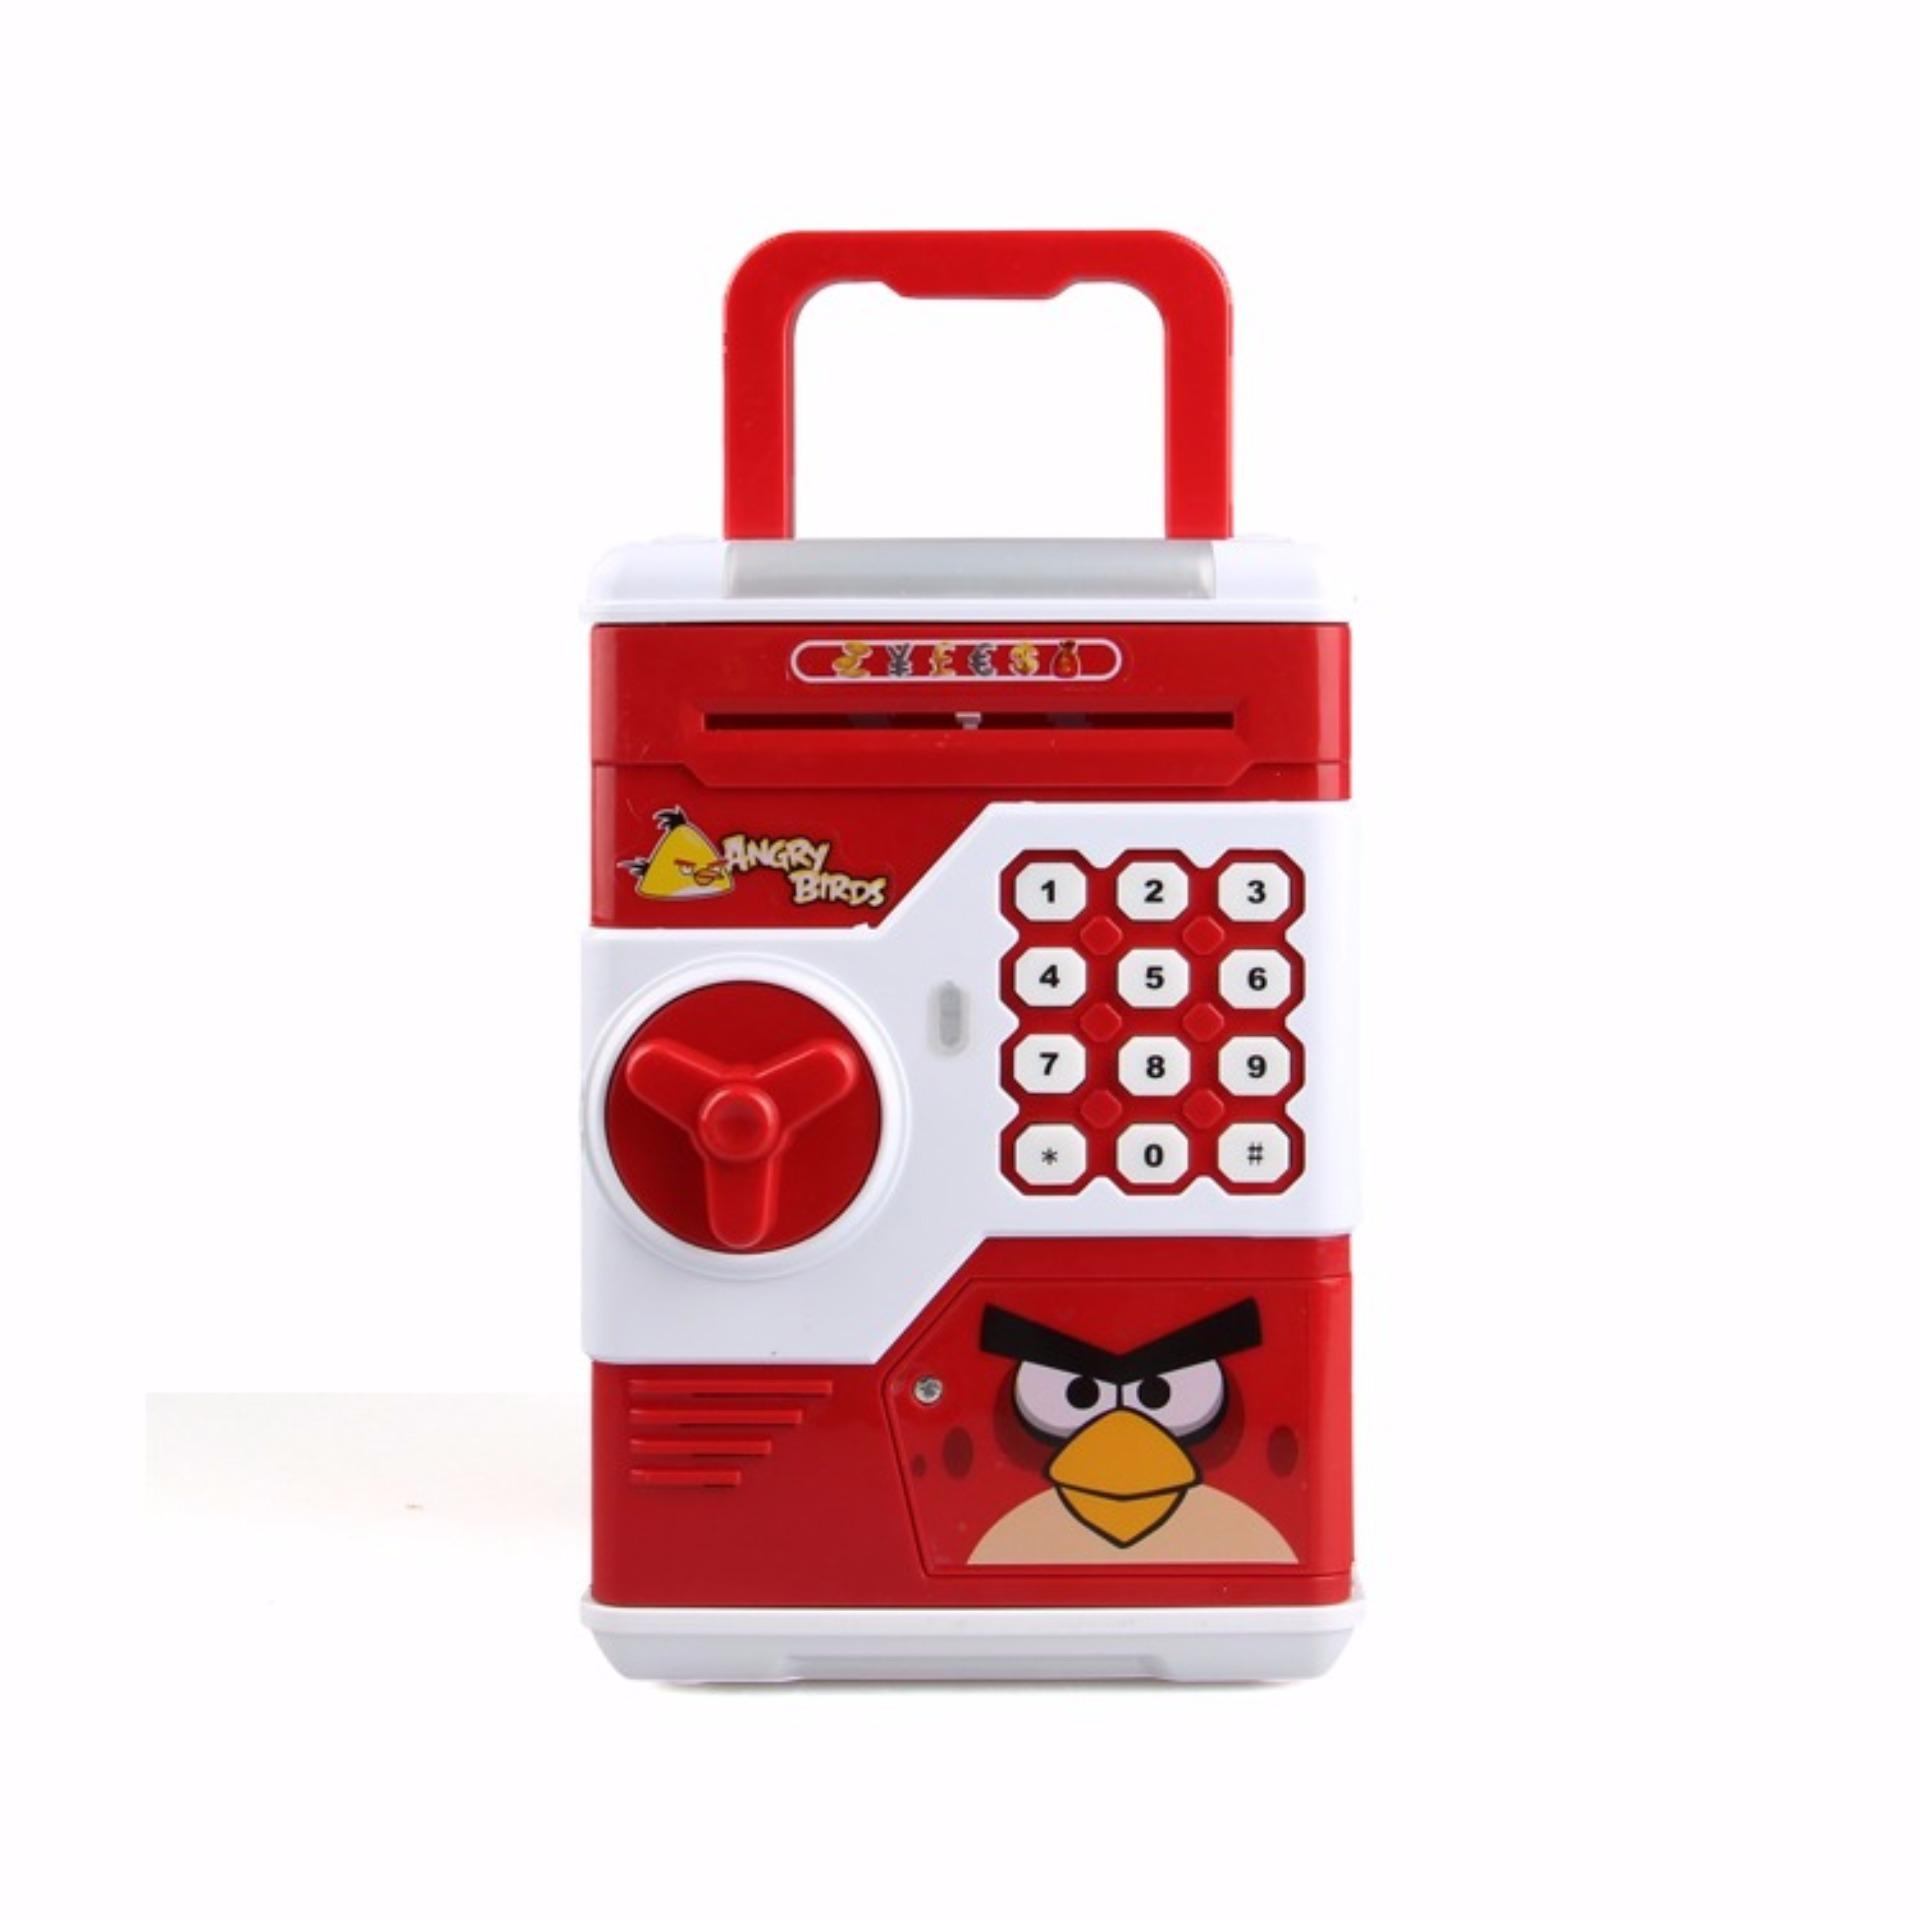 ... Hoshizora Password Safe Electronic Locks Saving Box Piggy Bank - Character - Merah ...